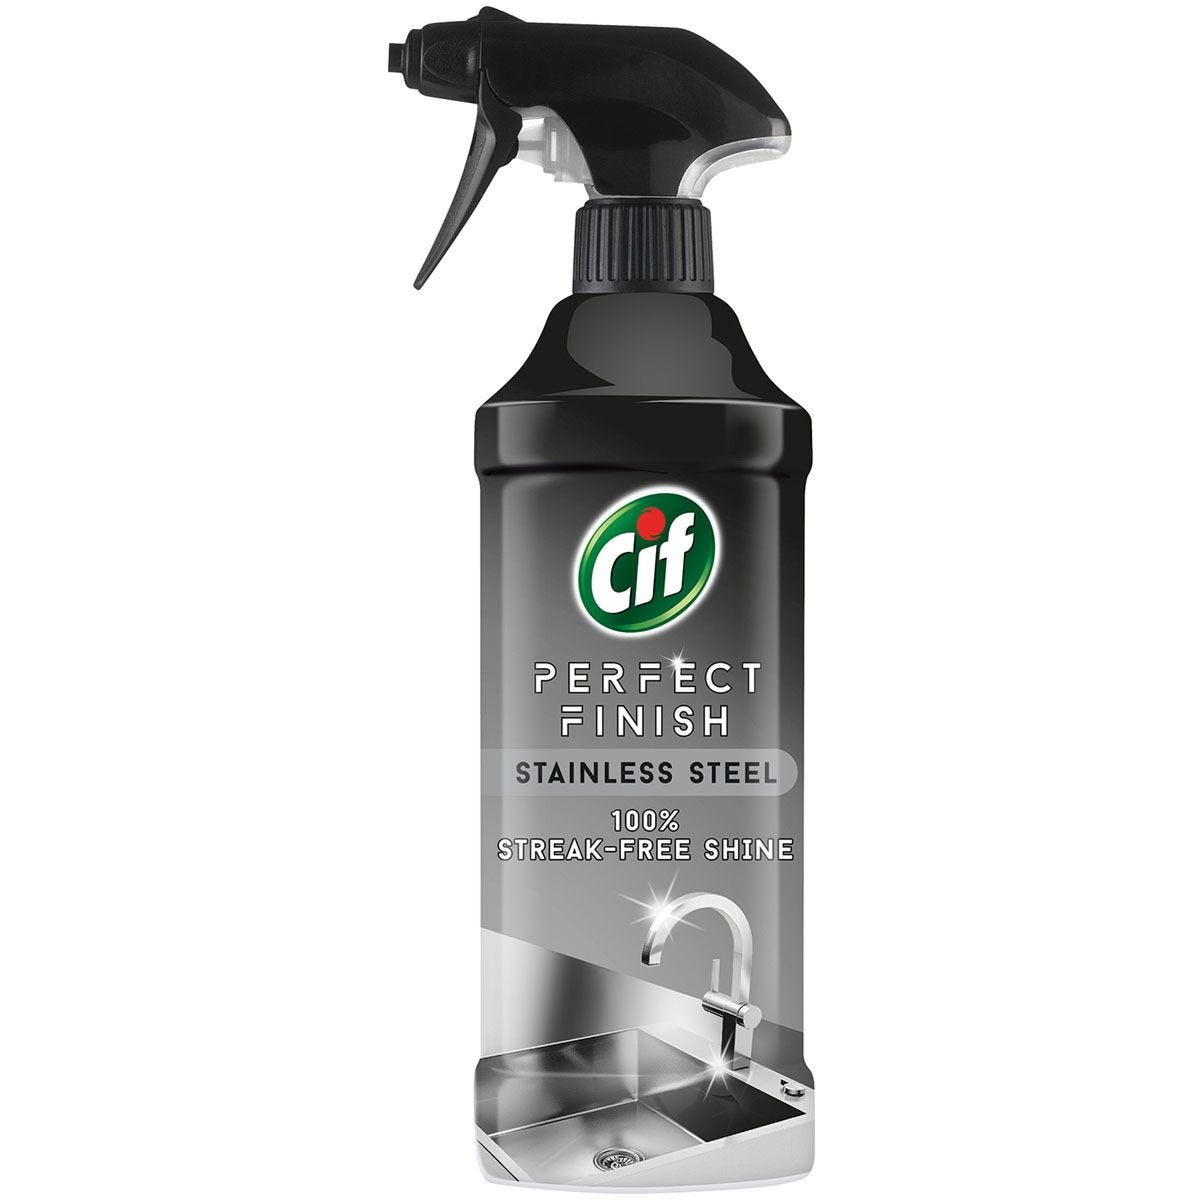 Cif Perfect Finish Stainless Steel Cleaner - 435ml